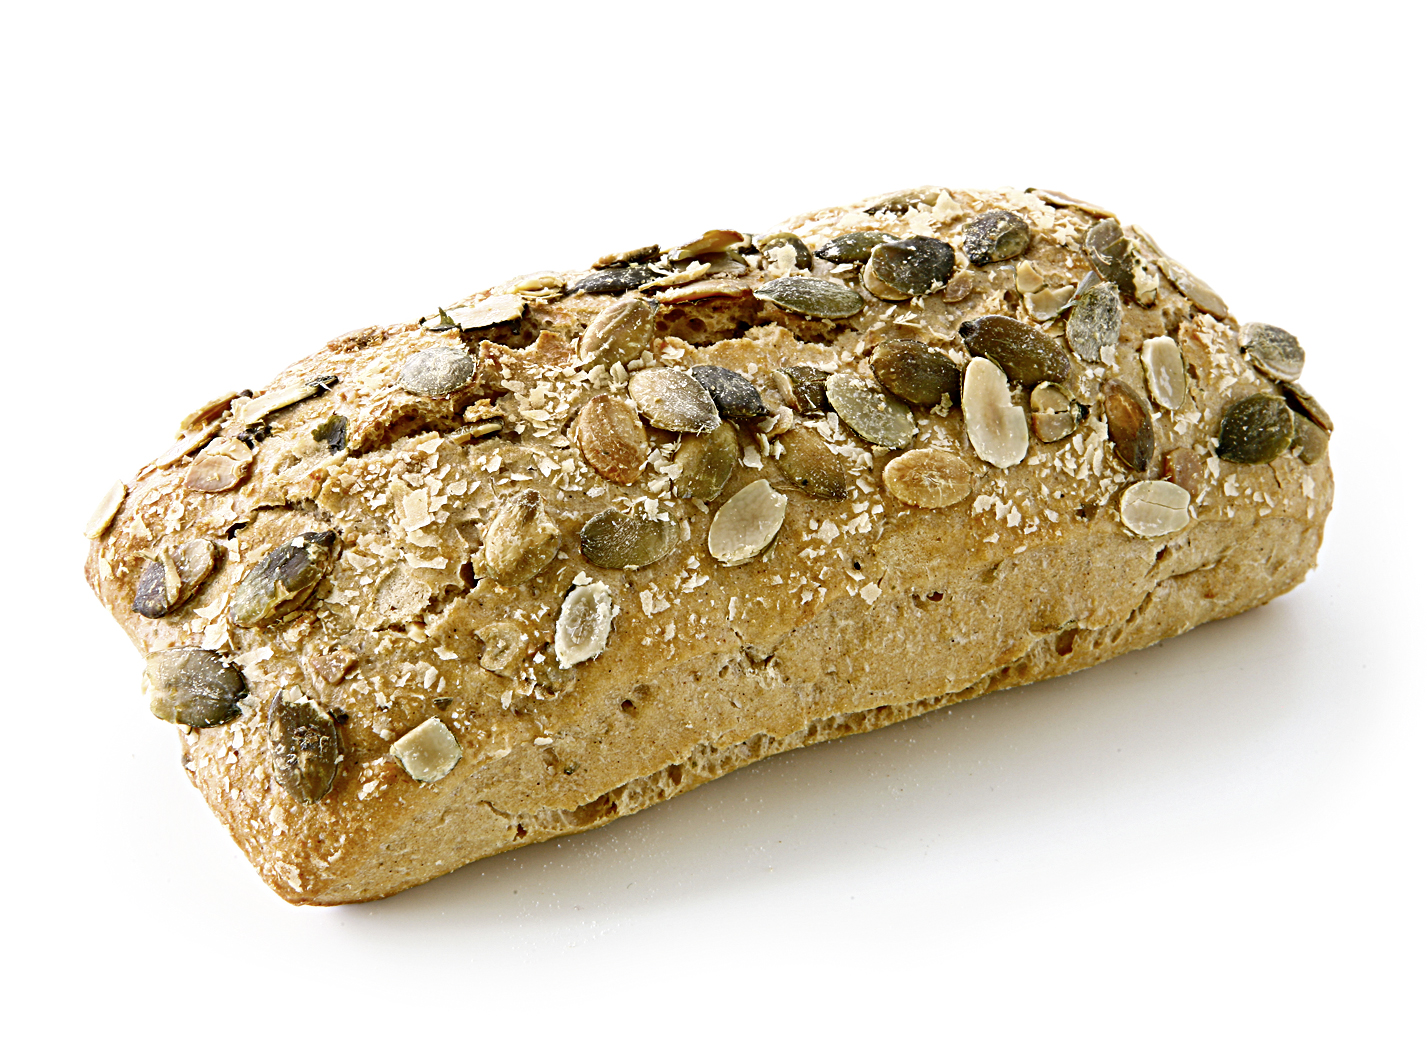 Potato-Pumpkinseed-Stick - wheat roll with 6,5% potato flakes, 6,5% pumpkin seeds and sunflower seeds